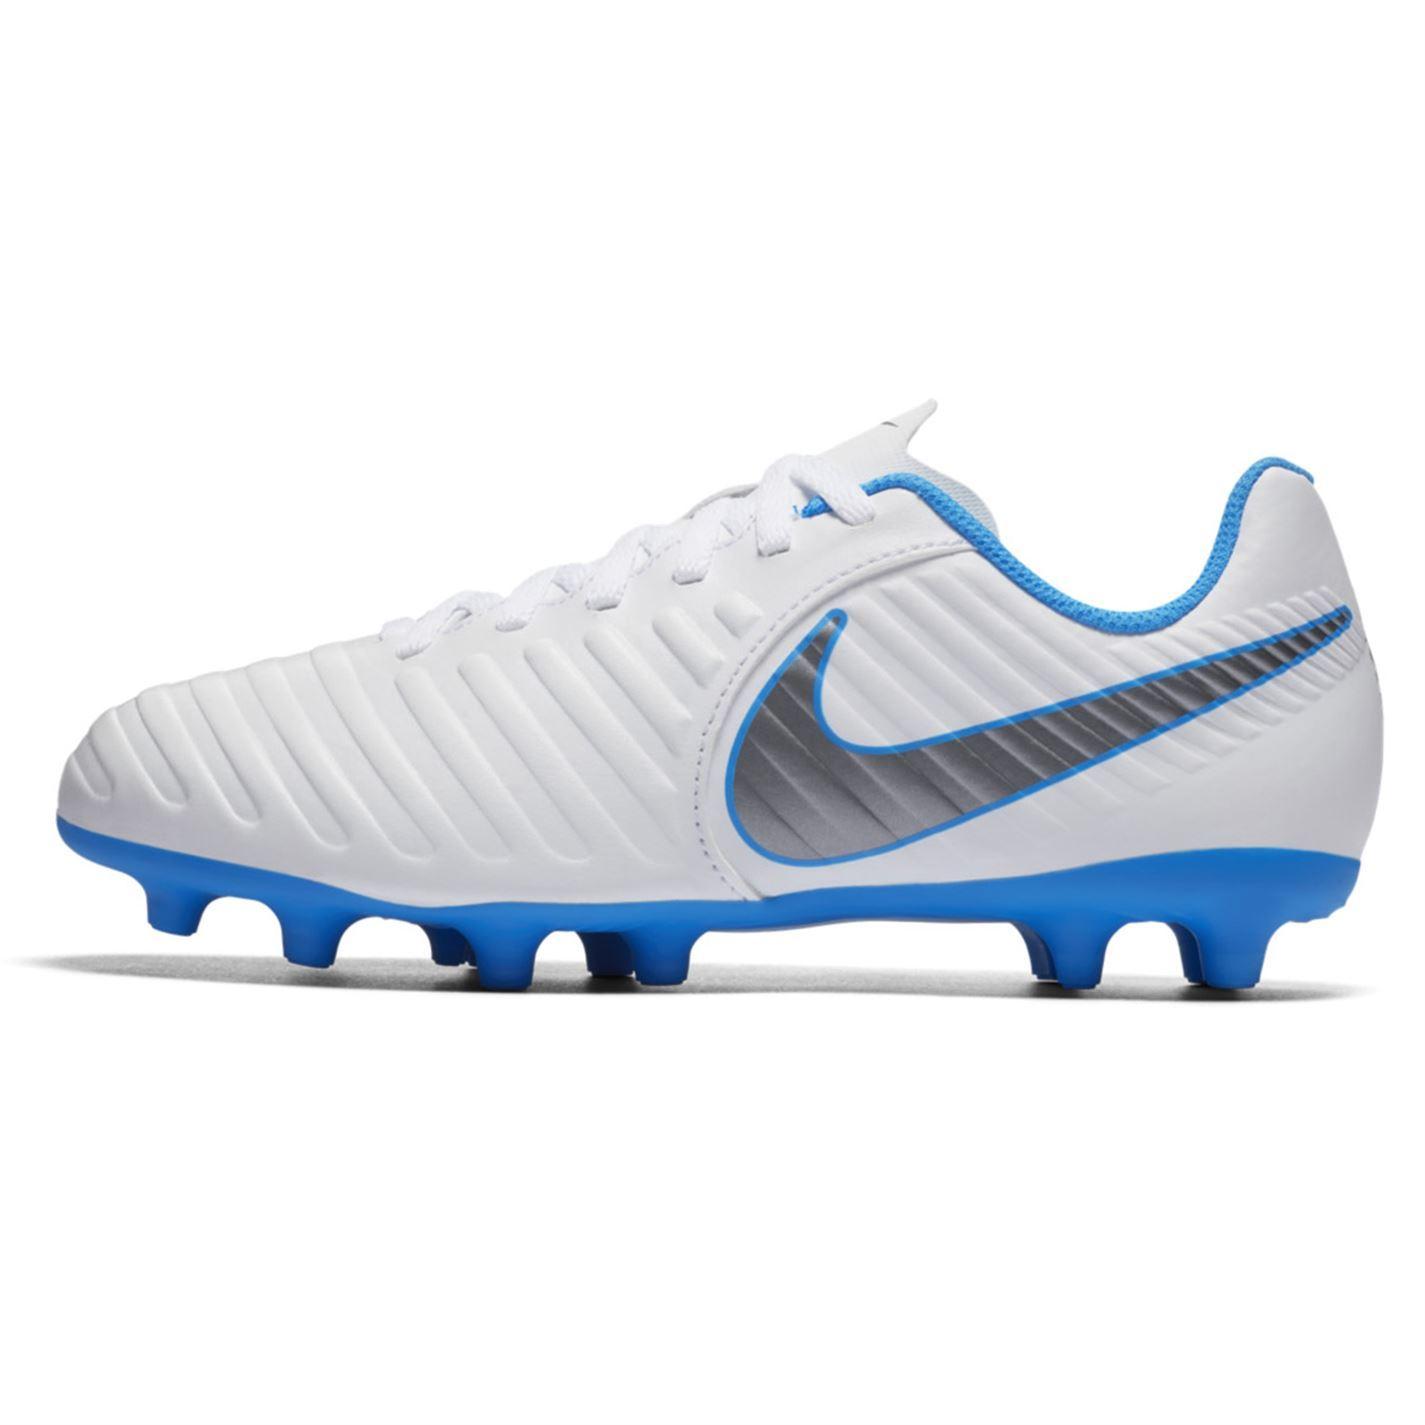 35e54d30954d ... Nike Tiempo Legend Club FG Firm Ground Football Boots Childs Soccer  Shoes Cleats